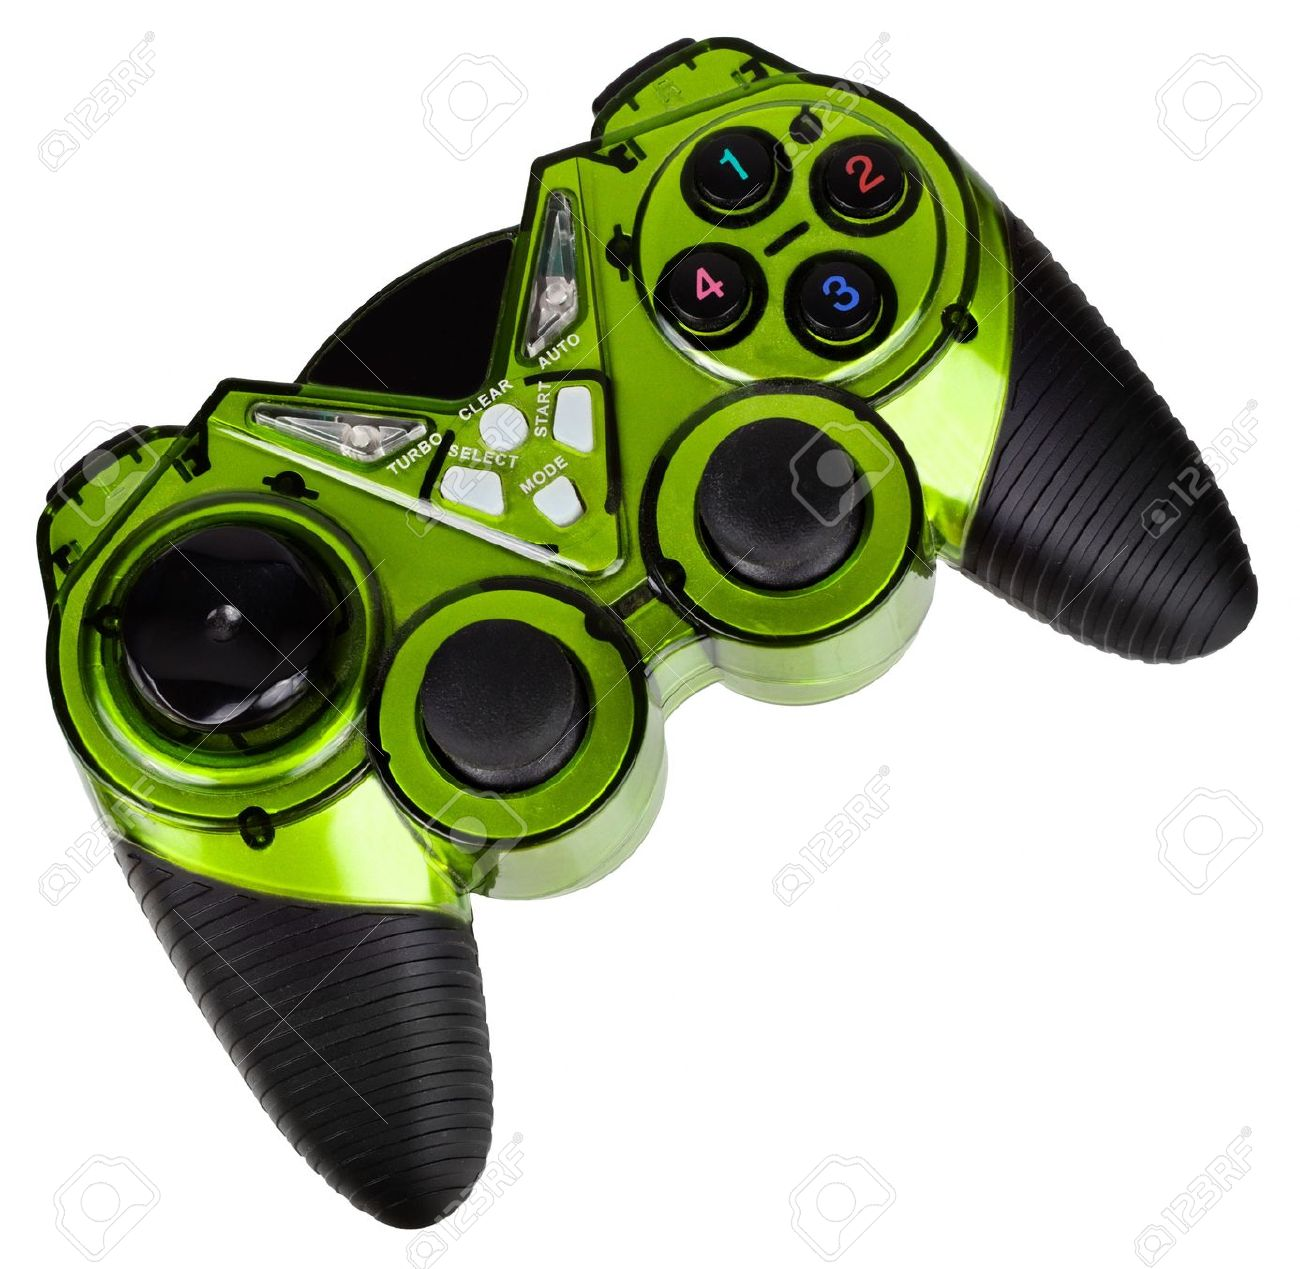 Controller clipart green Clipart Video collection games (72+)